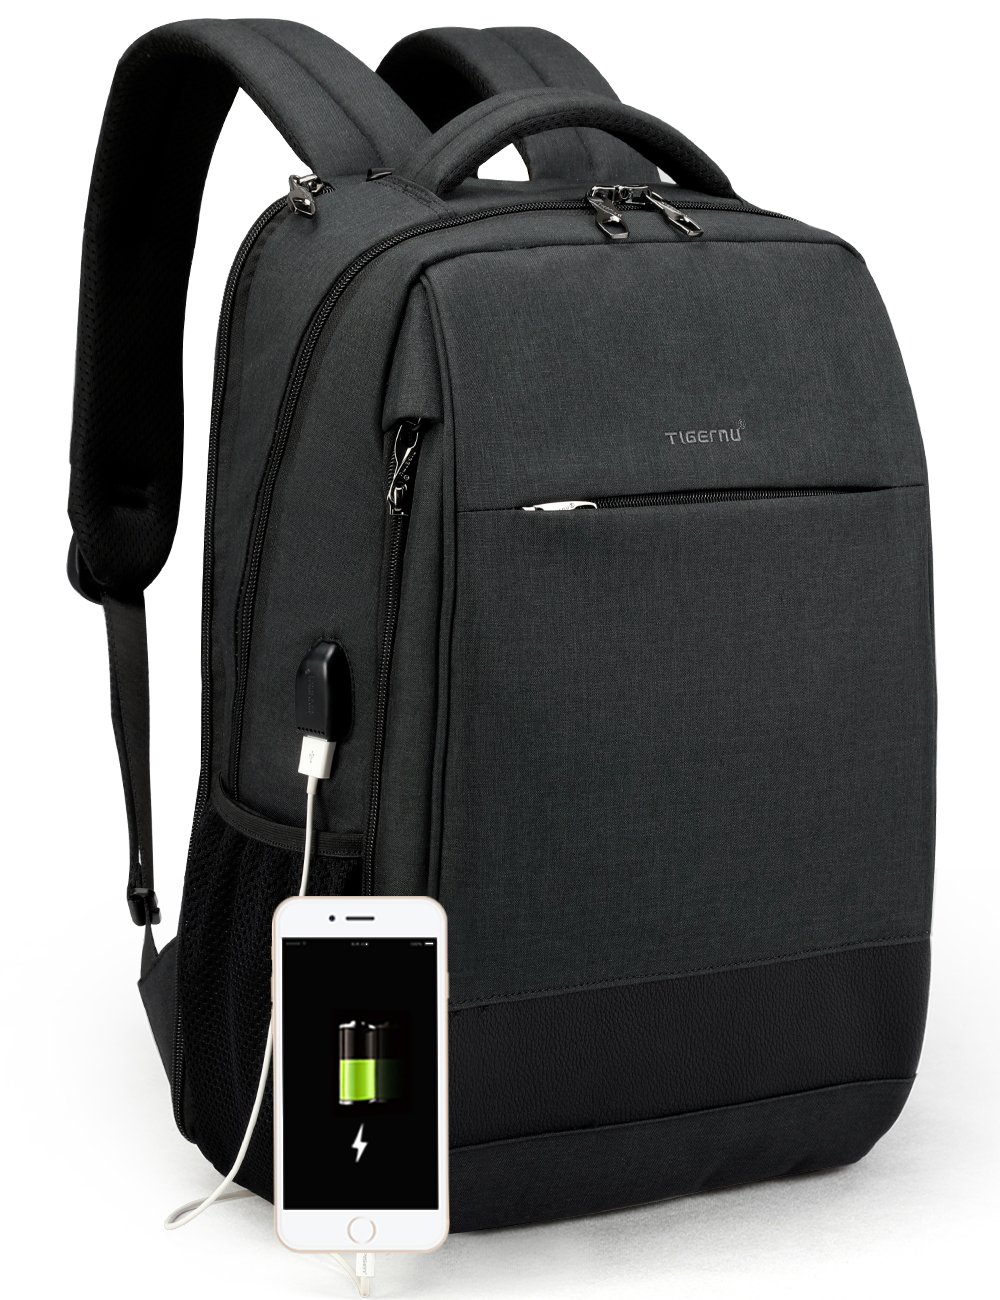 ... Laptop Backpack Anti Theft Waterproof Mochila Rucksack with USB  Charging Port Travel Business School Bag for Men Women Fit 14 15.6 Inch  Computer (Black) c080ce9446b7e